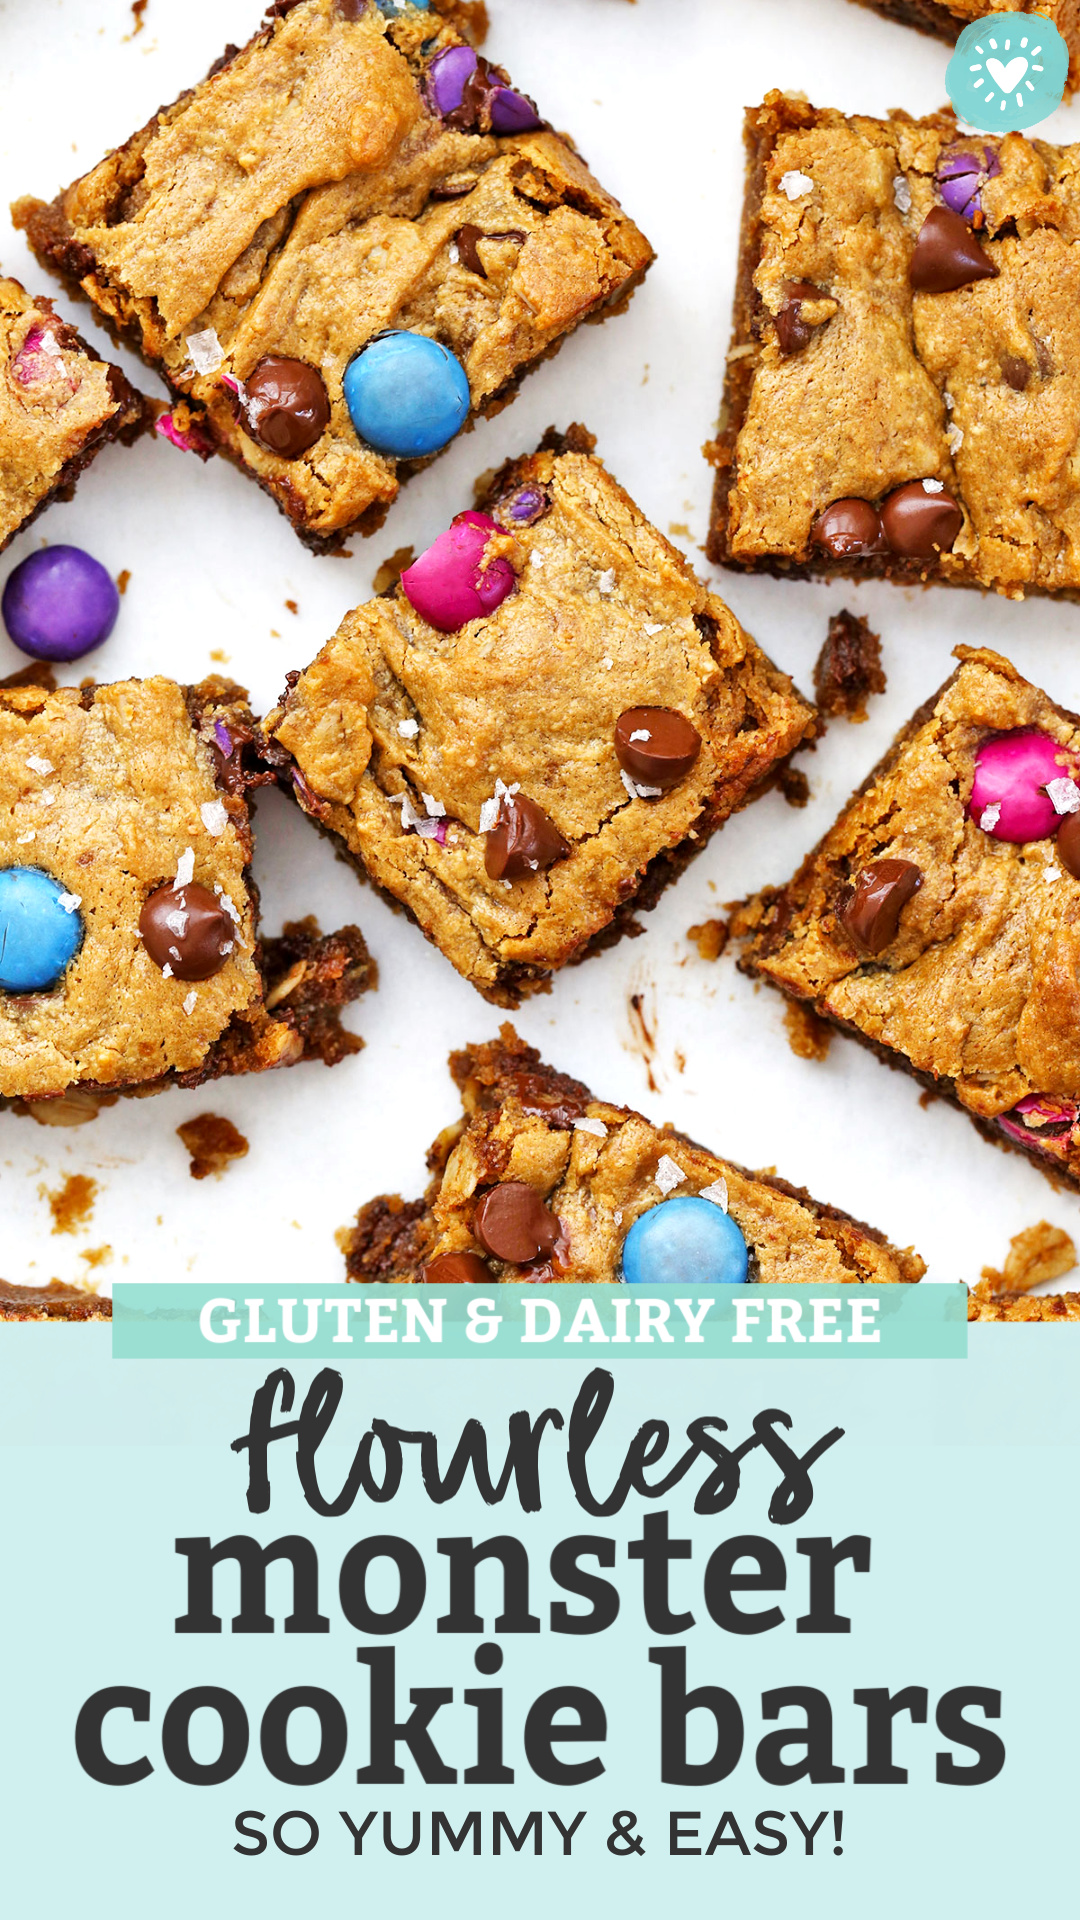 Flourless Monster Cookie Bars from One Lovely Life